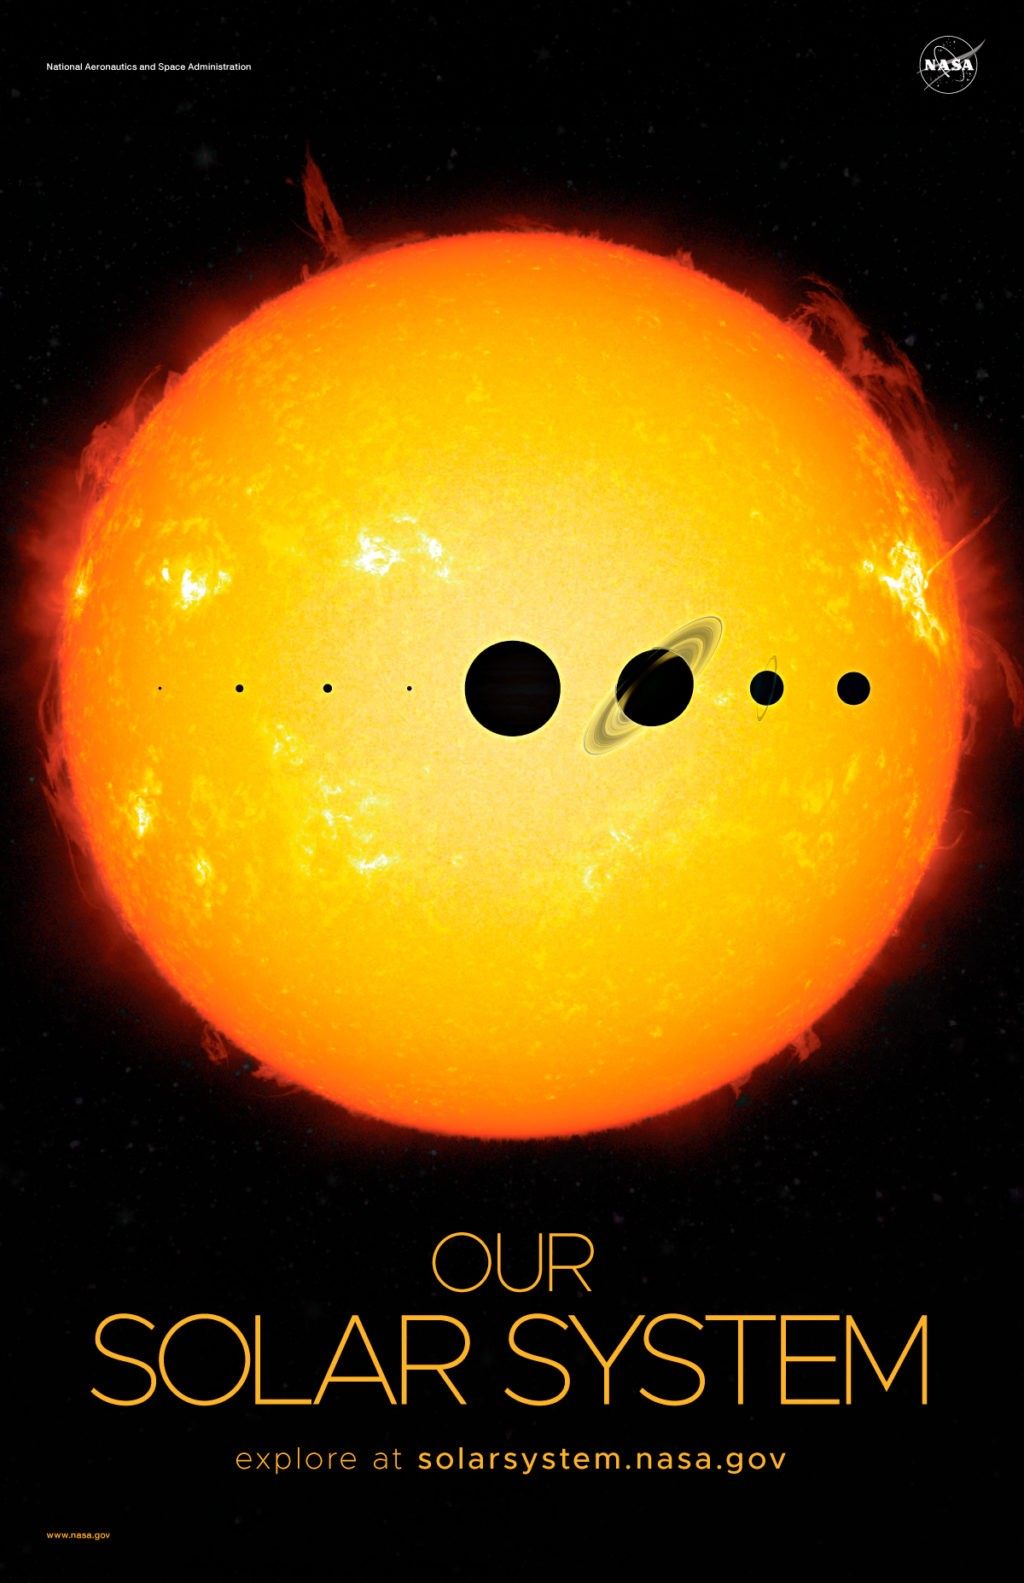 Poster of planets with sun in background to show scale